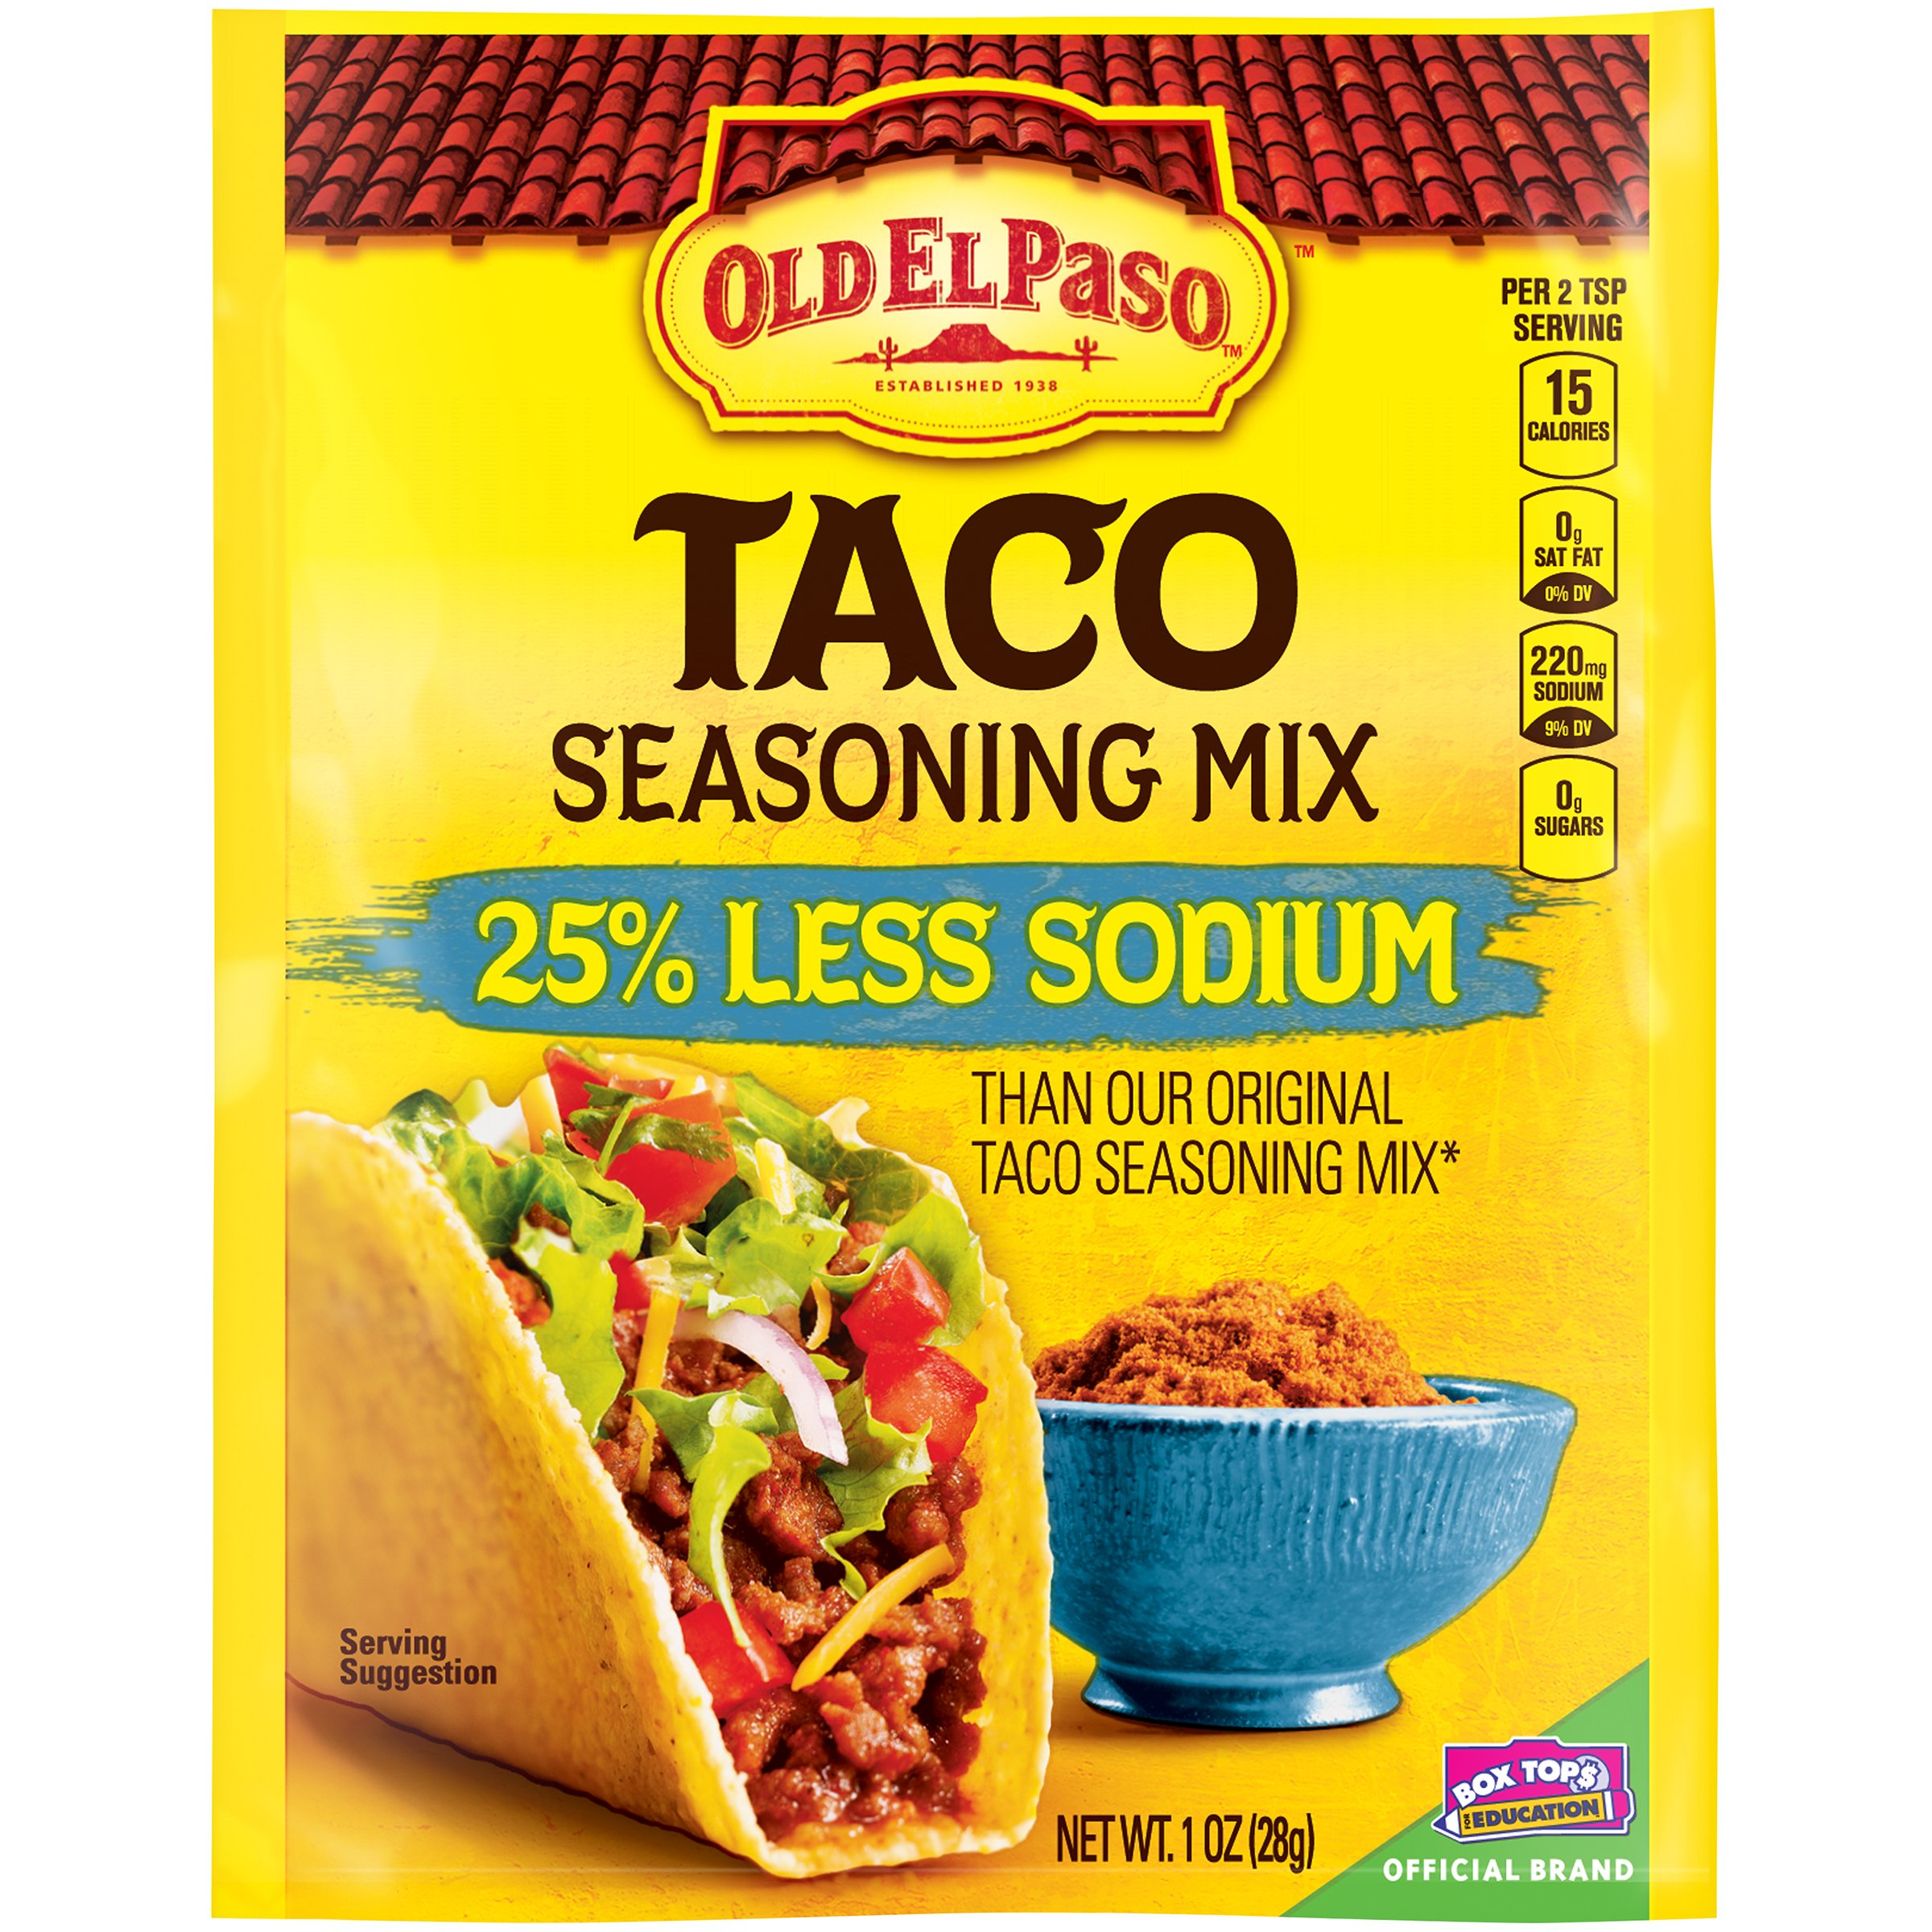 Old El Paso Taco Seasoning Mix, 25% Less Sodium, 1 oz Packet